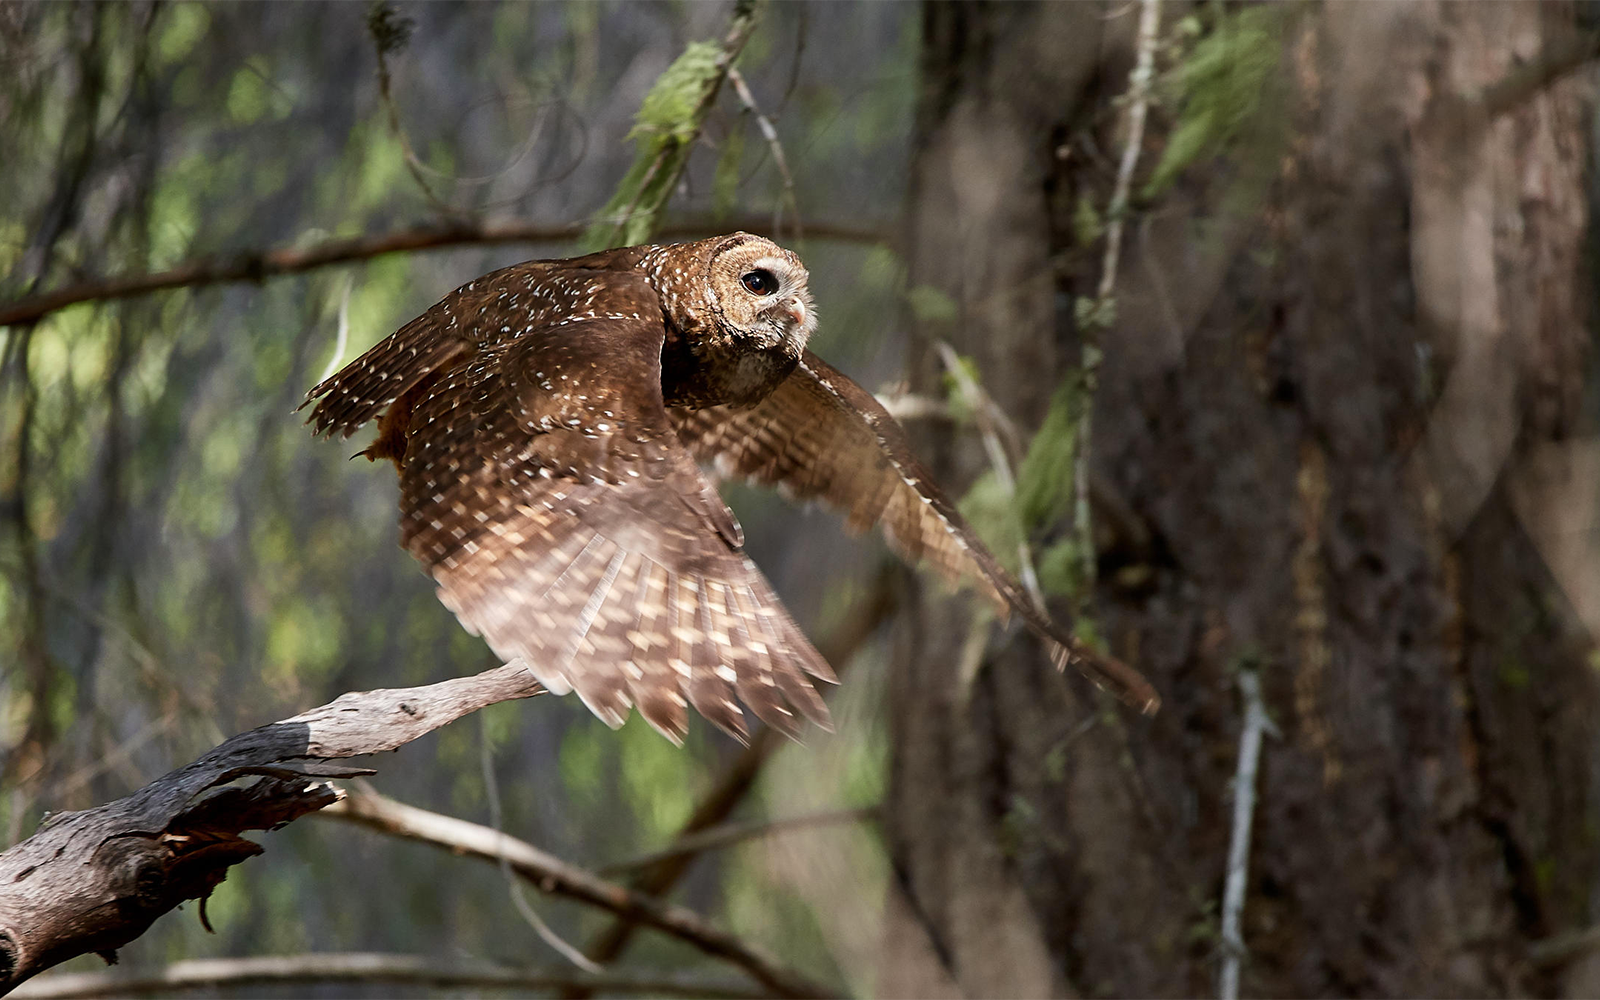 Comments Needed Today: Tell U.S. Fish and Wildlife Service to Keep Critical Spotted Owl Habitat Protected